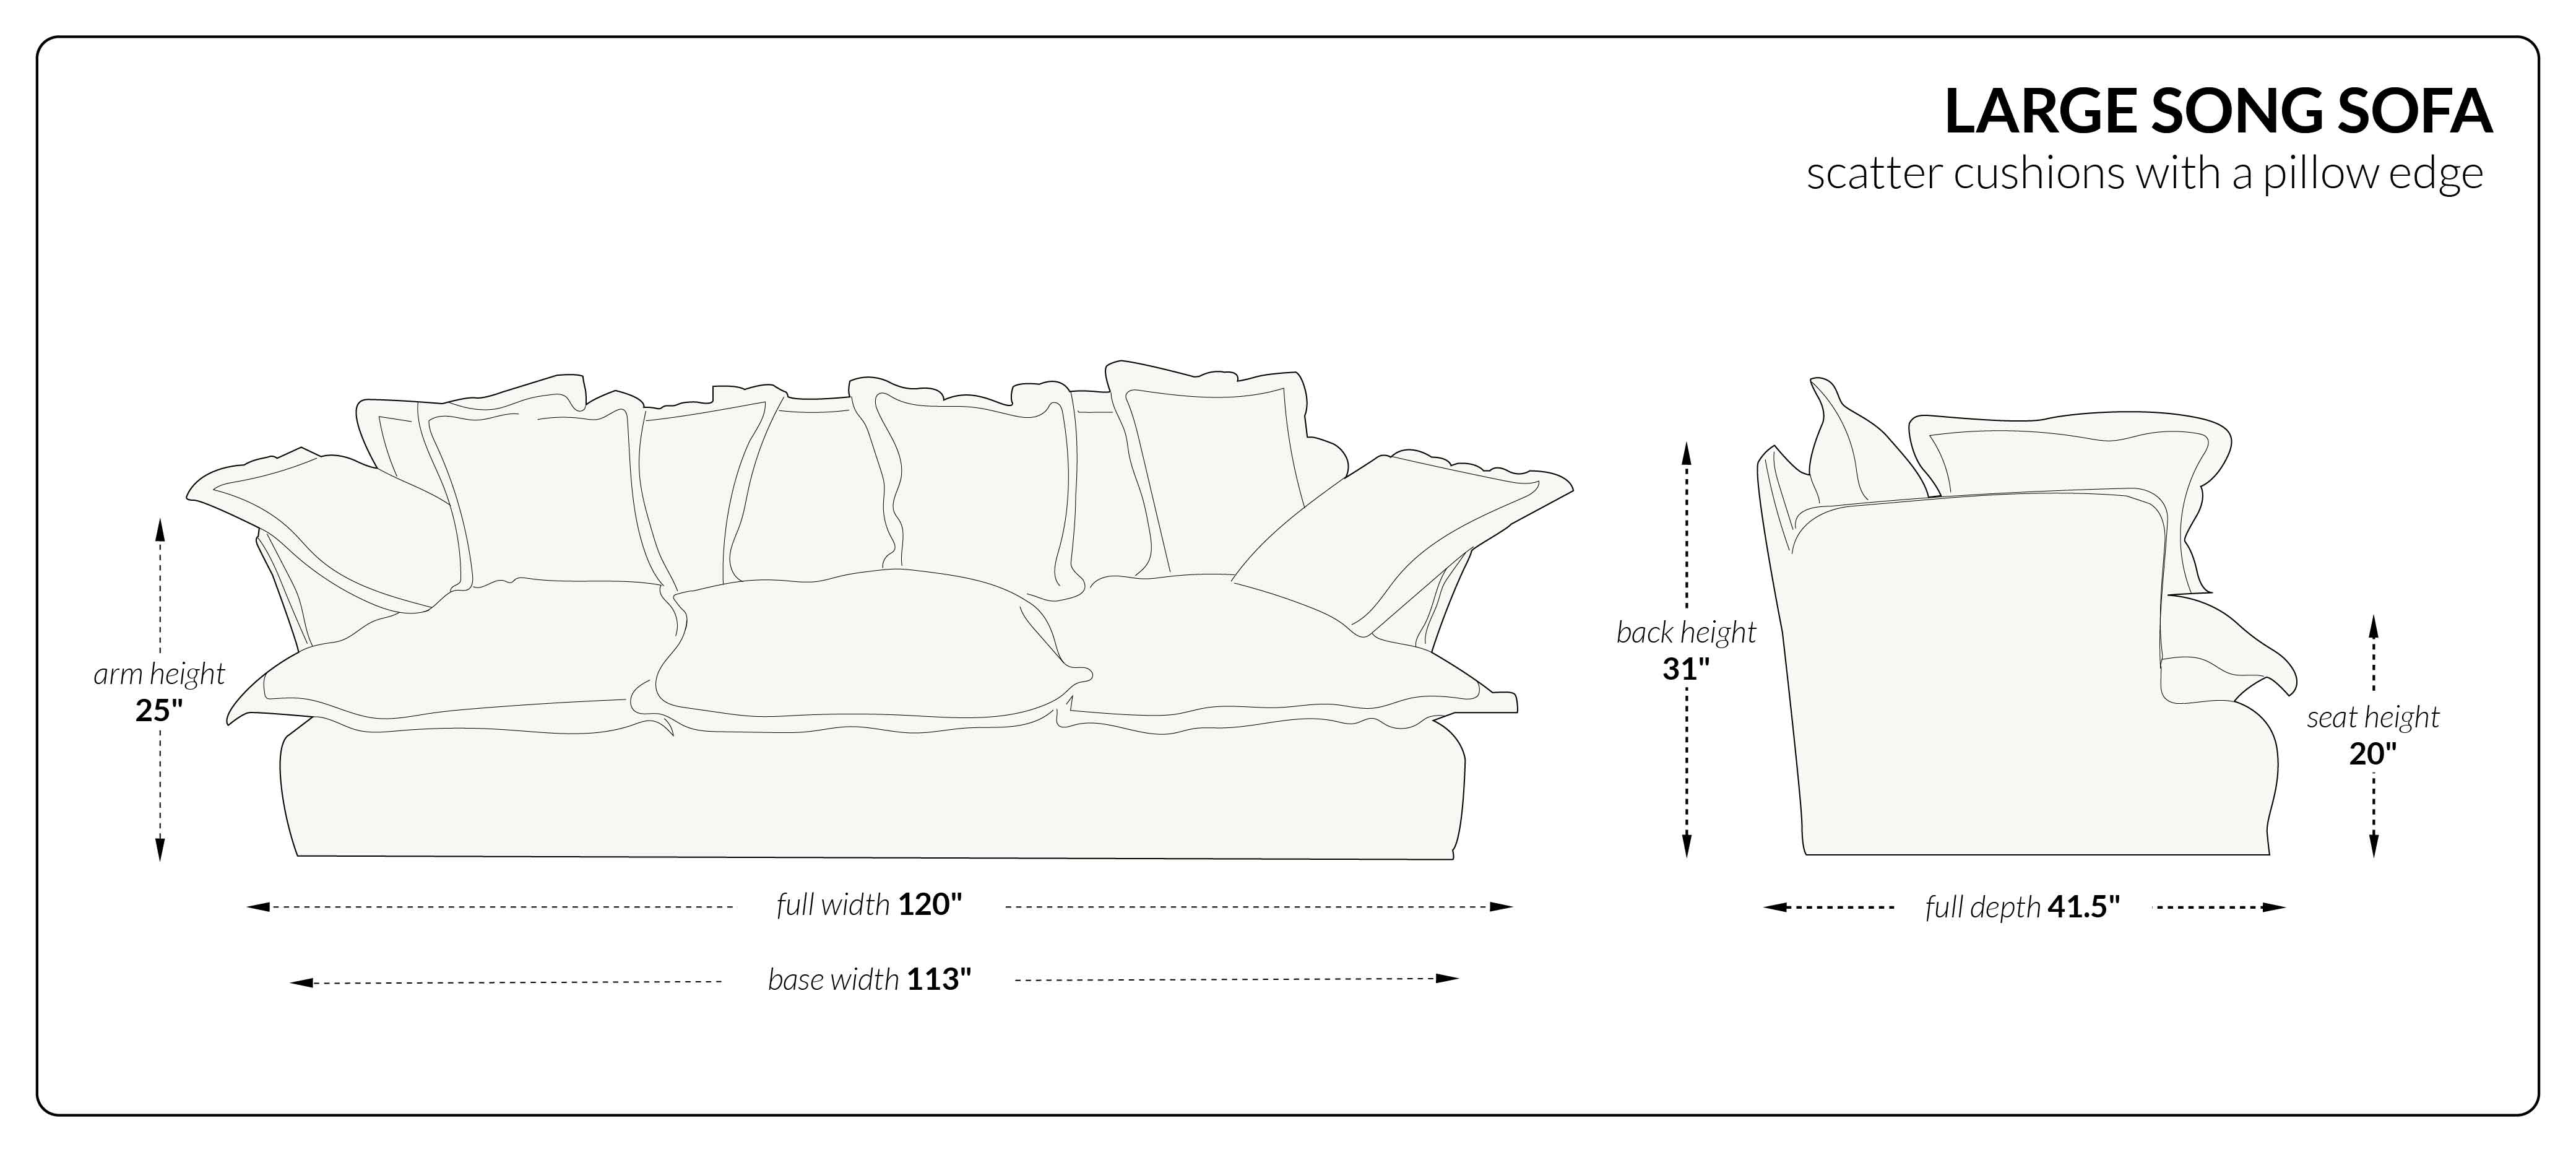 Large Song Sofa scatter